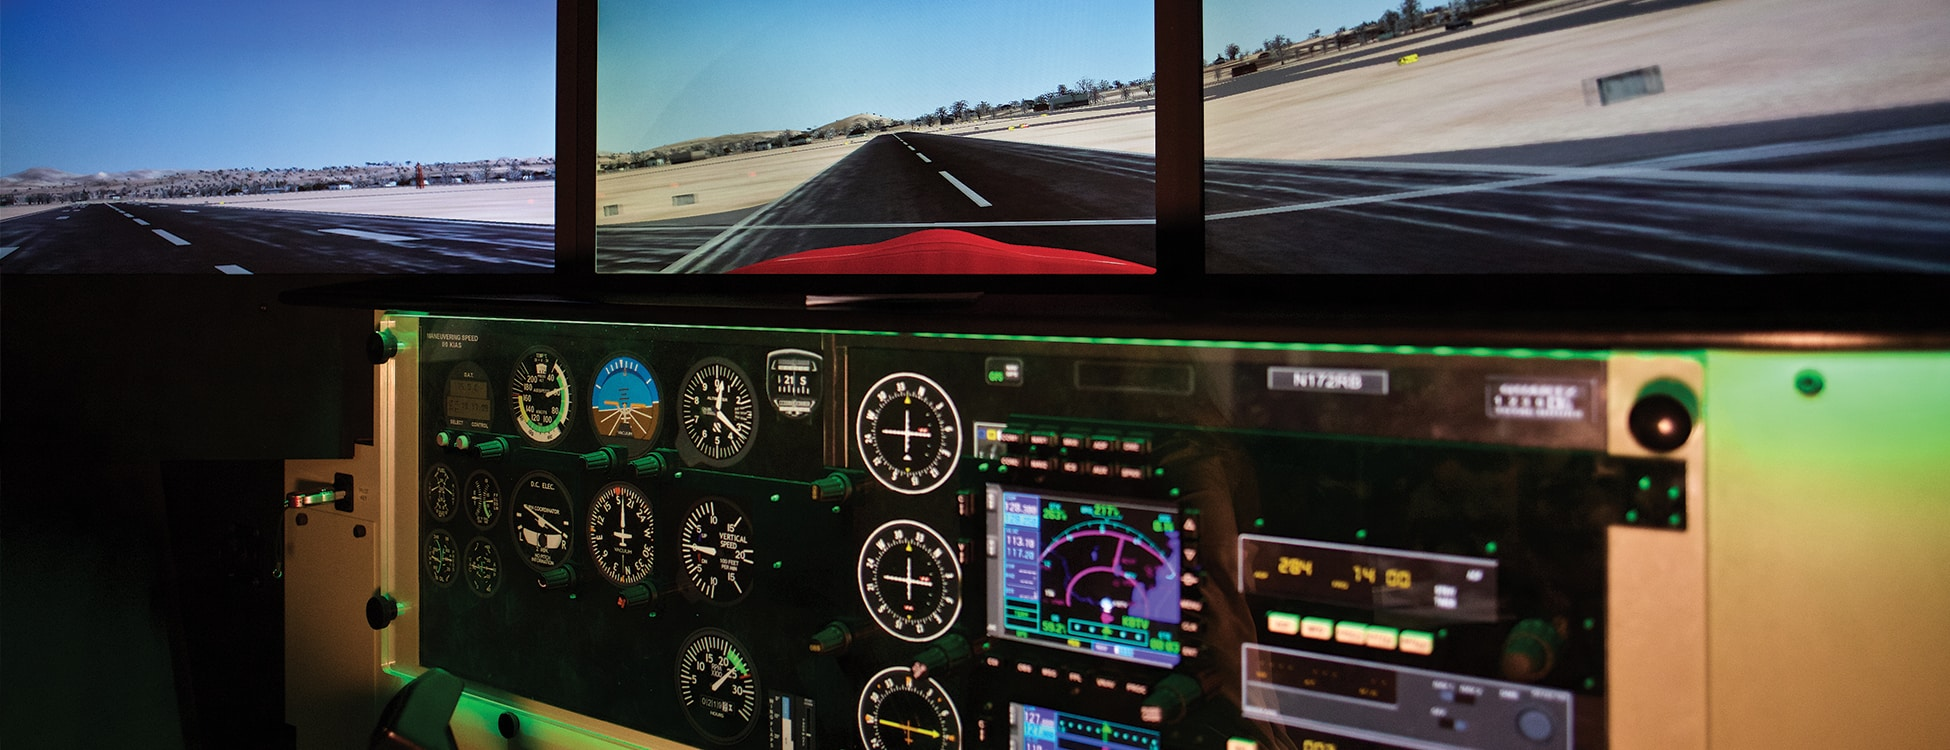 professional pilot technology, simulation, flying